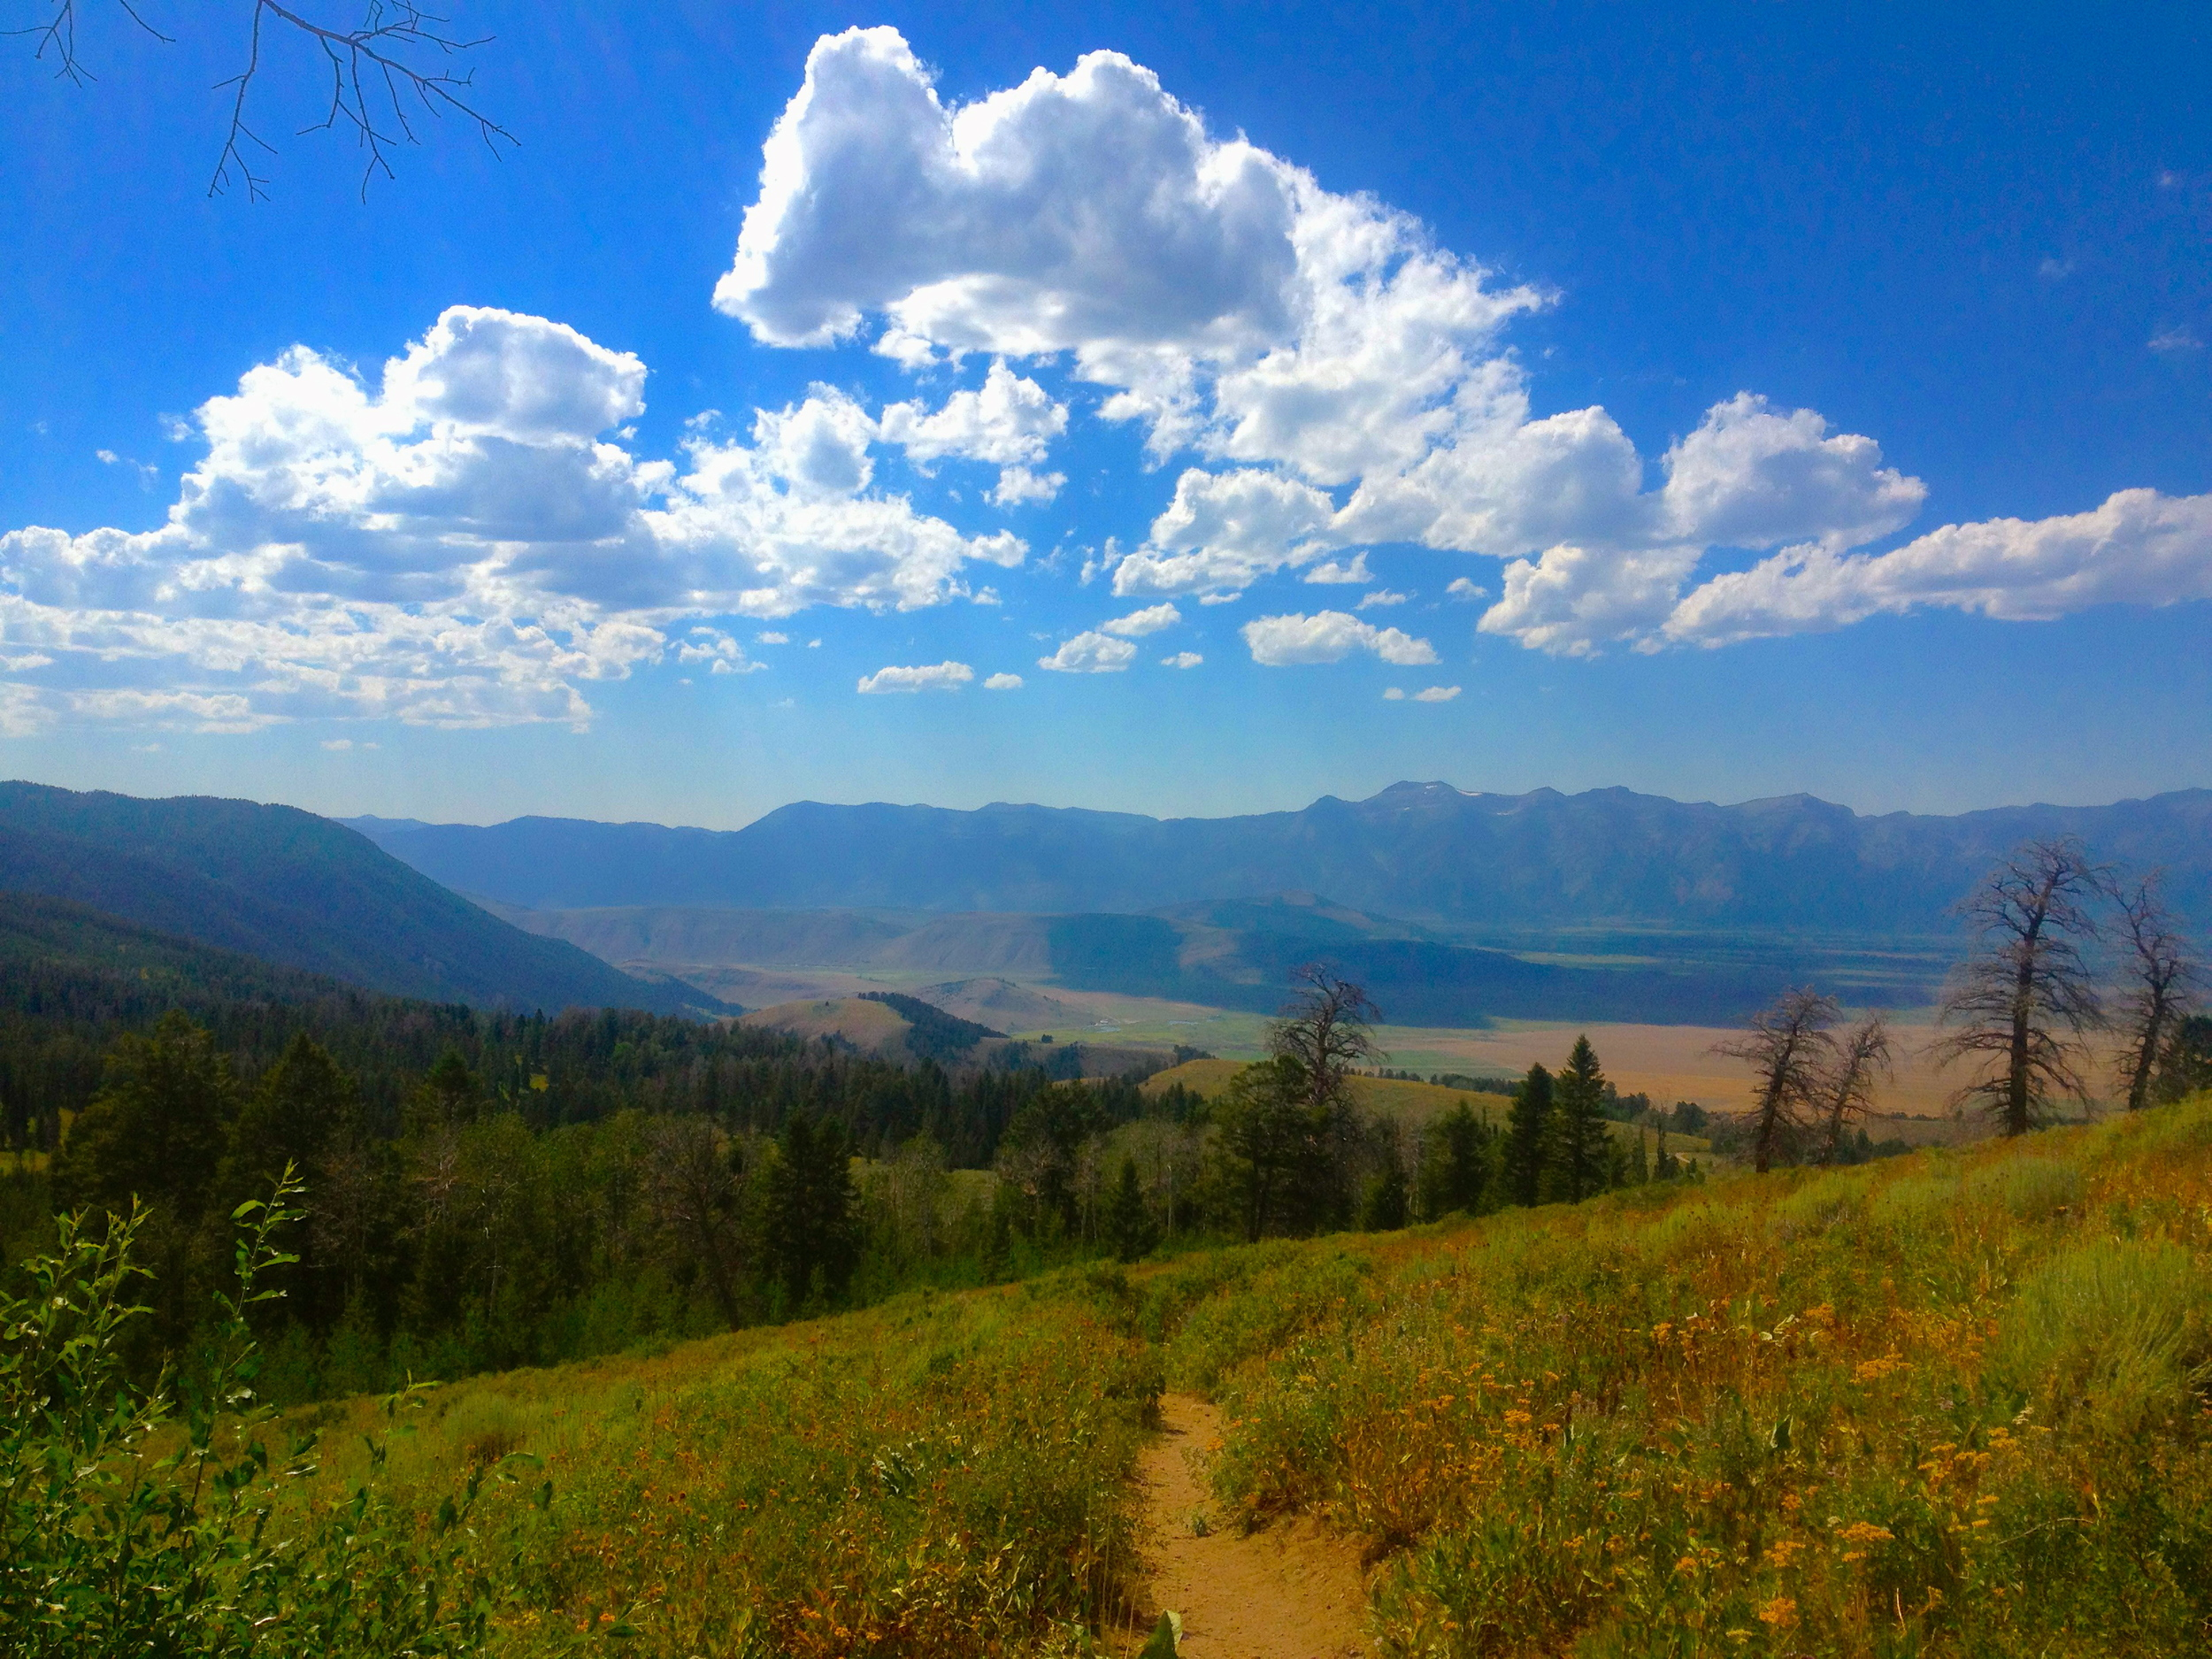 Lake Goodwin Trail, Gros Ventres Wilderness, Bridger Teton National Forest